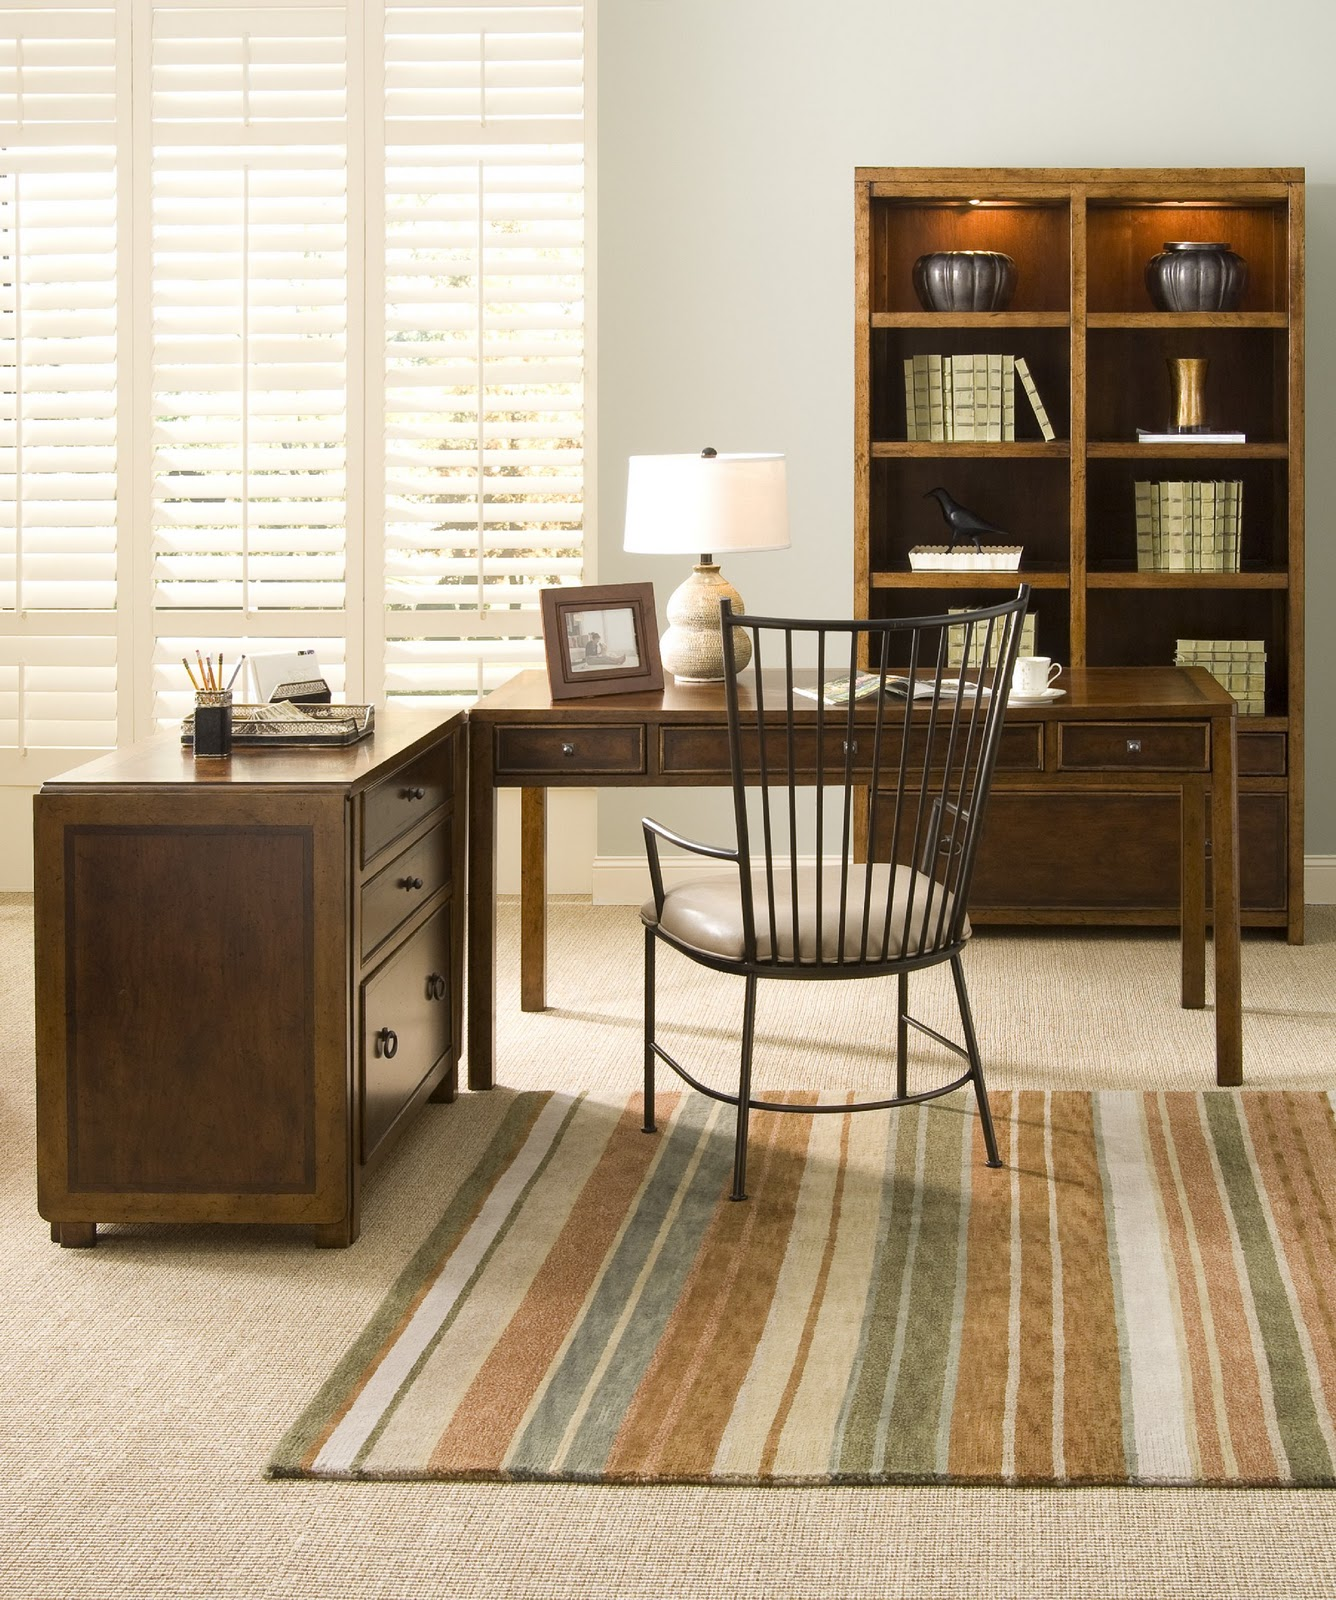 Hom Office Furniture: Gift & Home Today: Transitional Style Furniture For